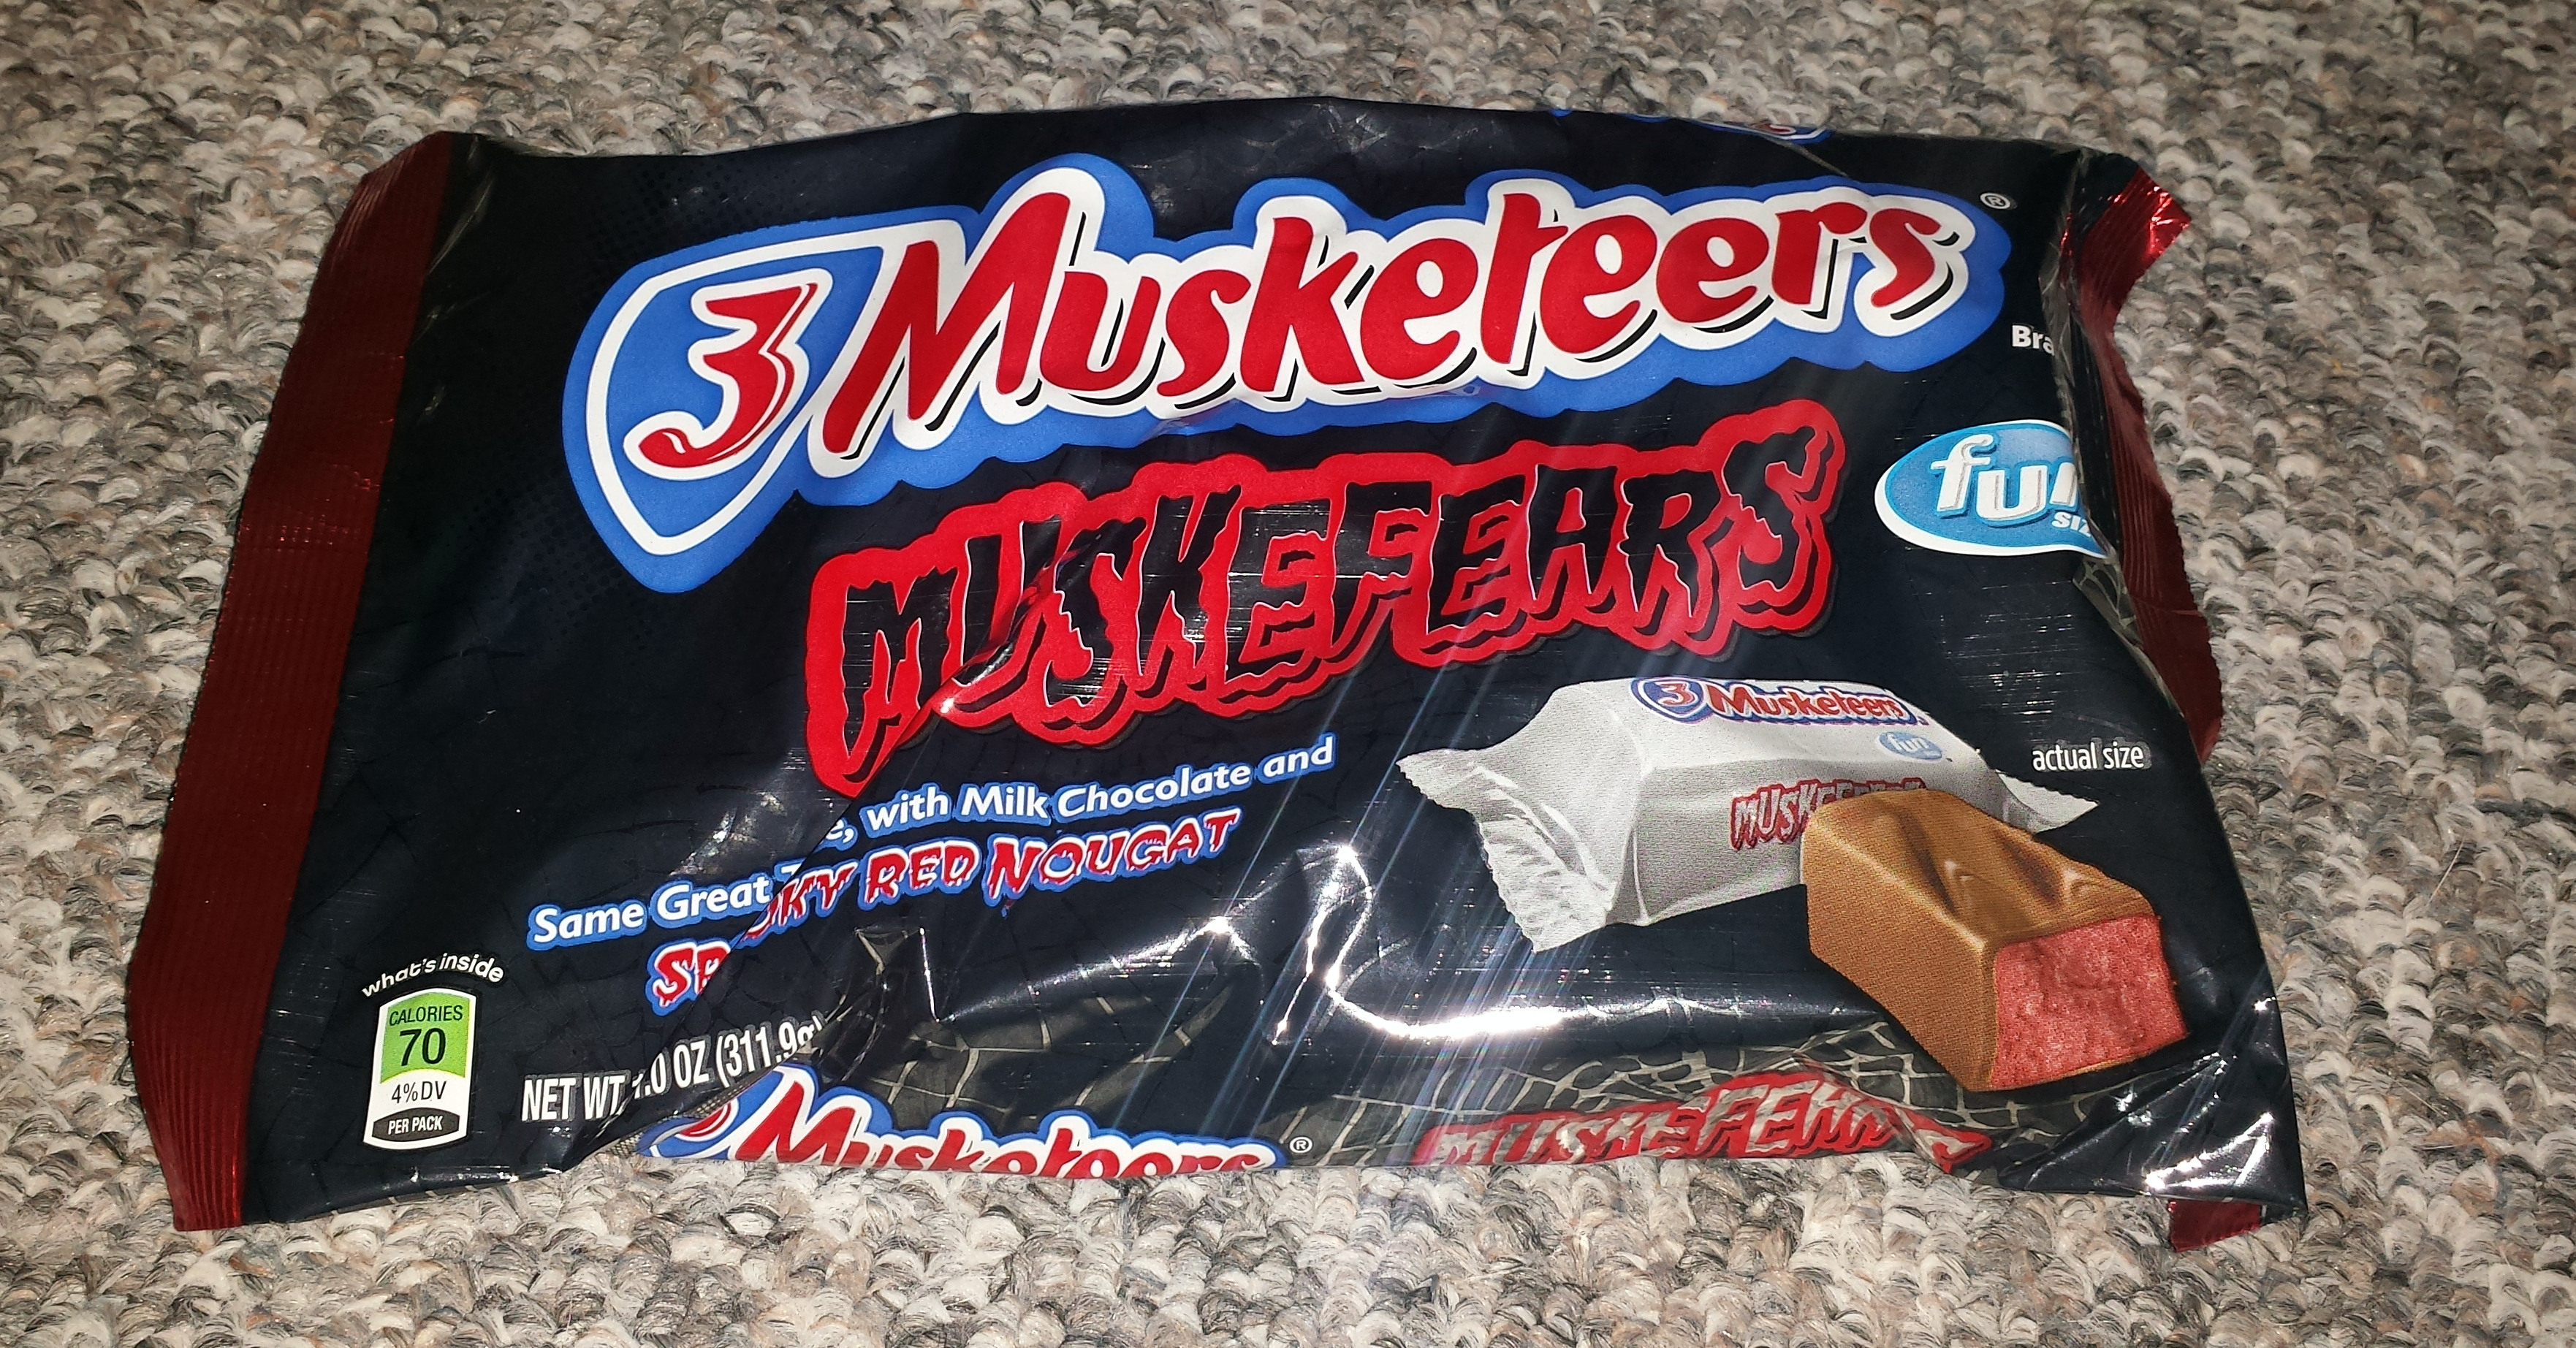 it's not too early for halloween candy is it? 3 musketeers